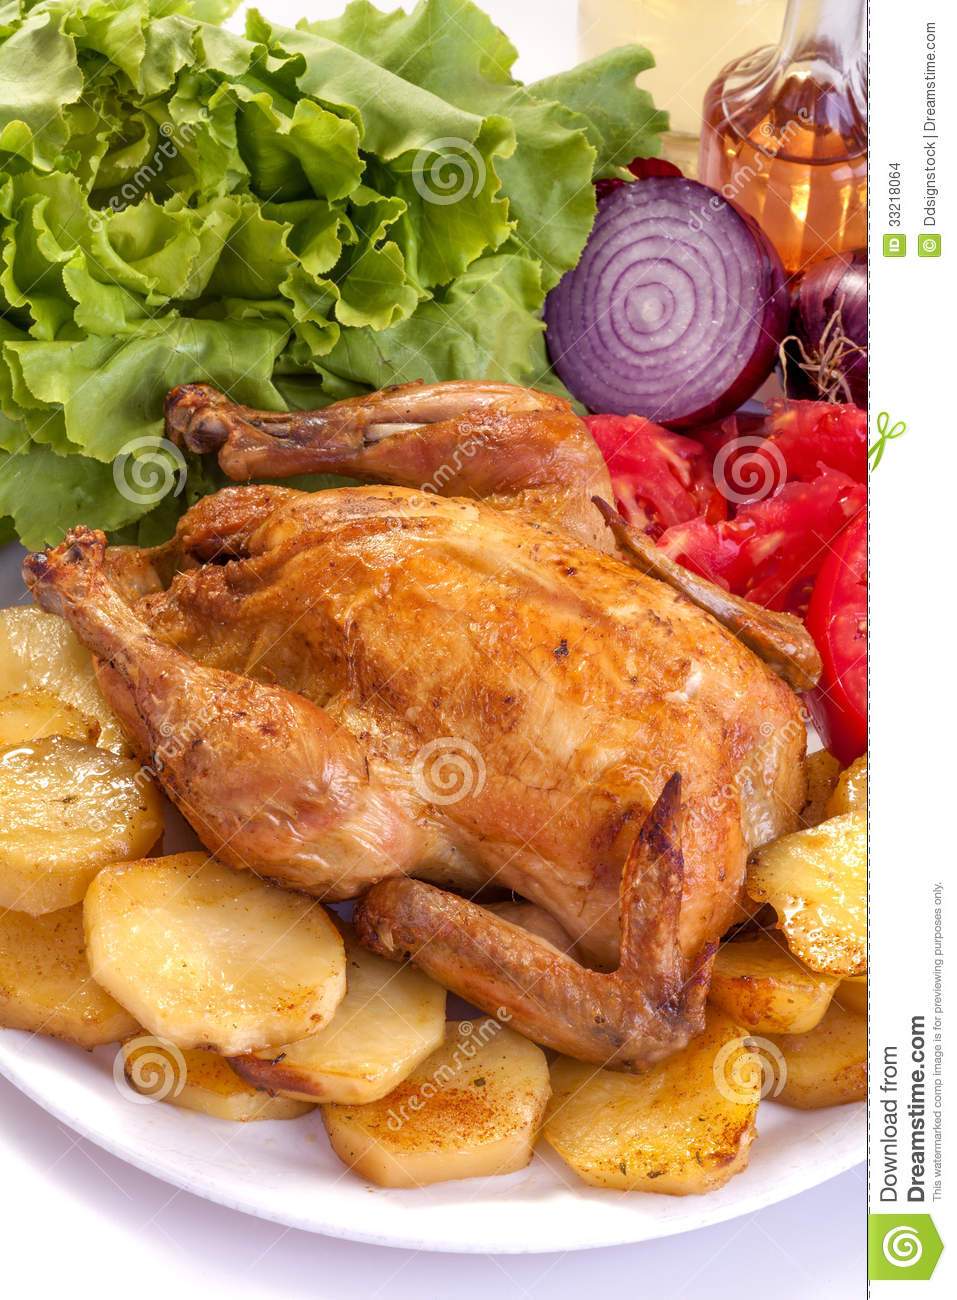 Roast Chicken Stock Images - Image: 33218064